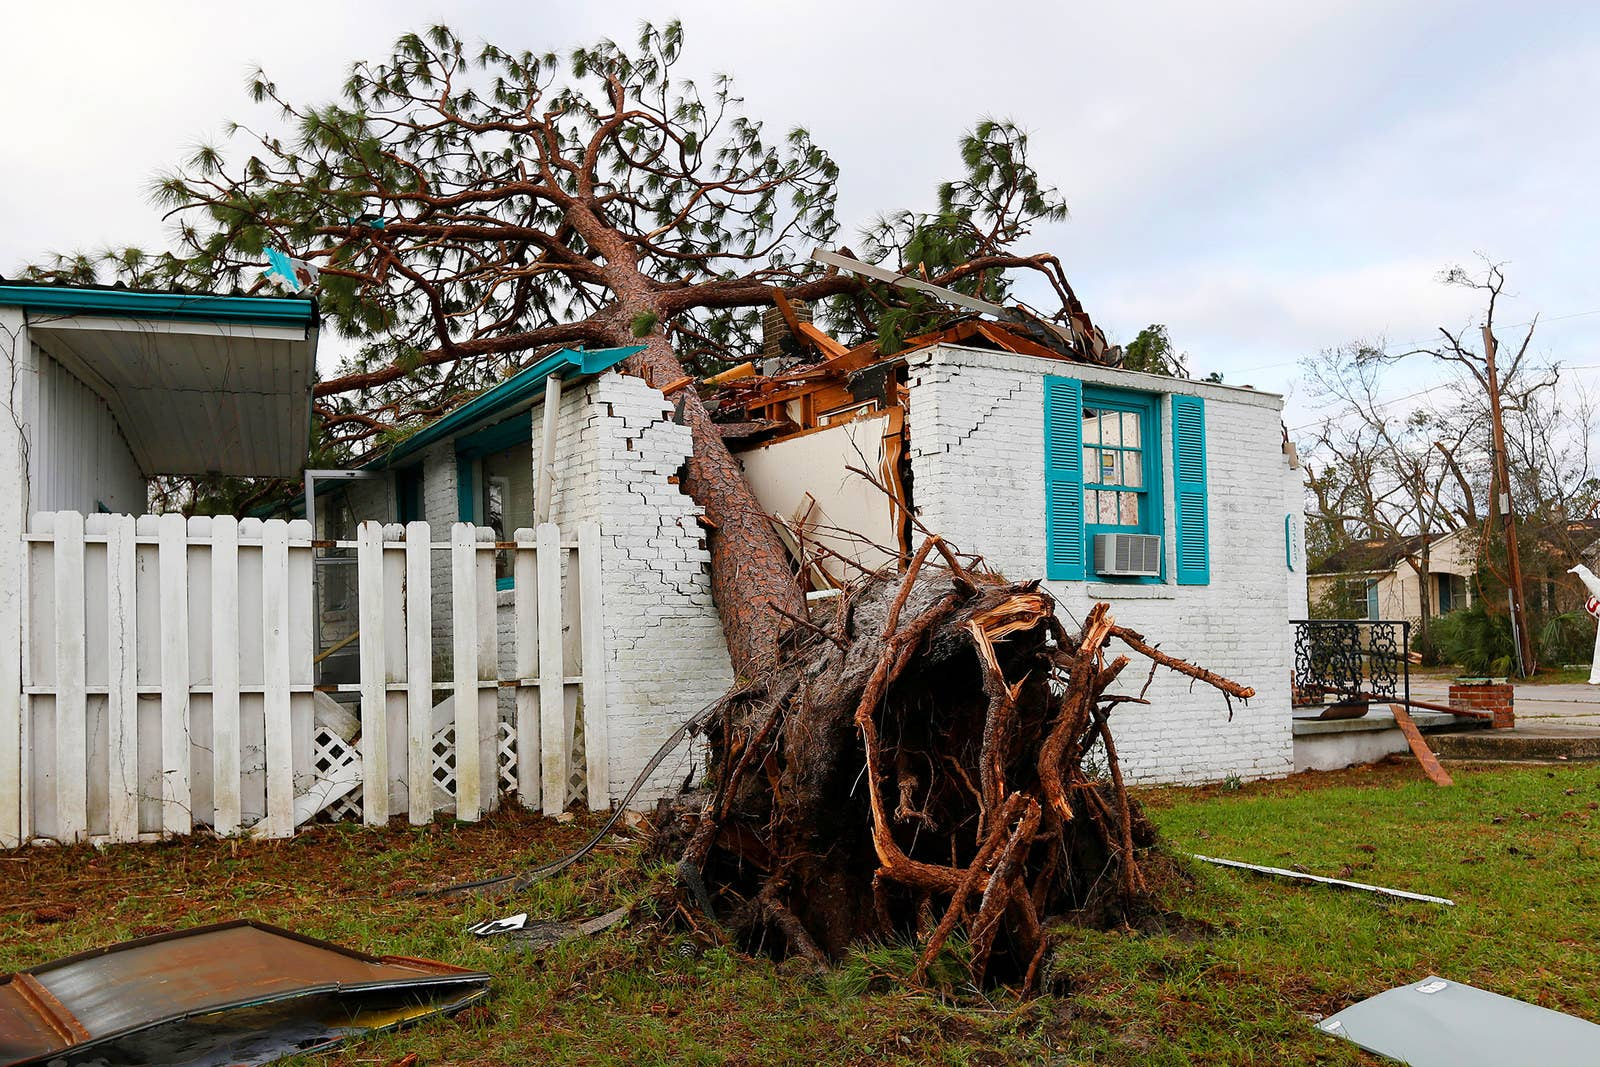 A house damaged by Hurricane Michael in Panama City, Florida.